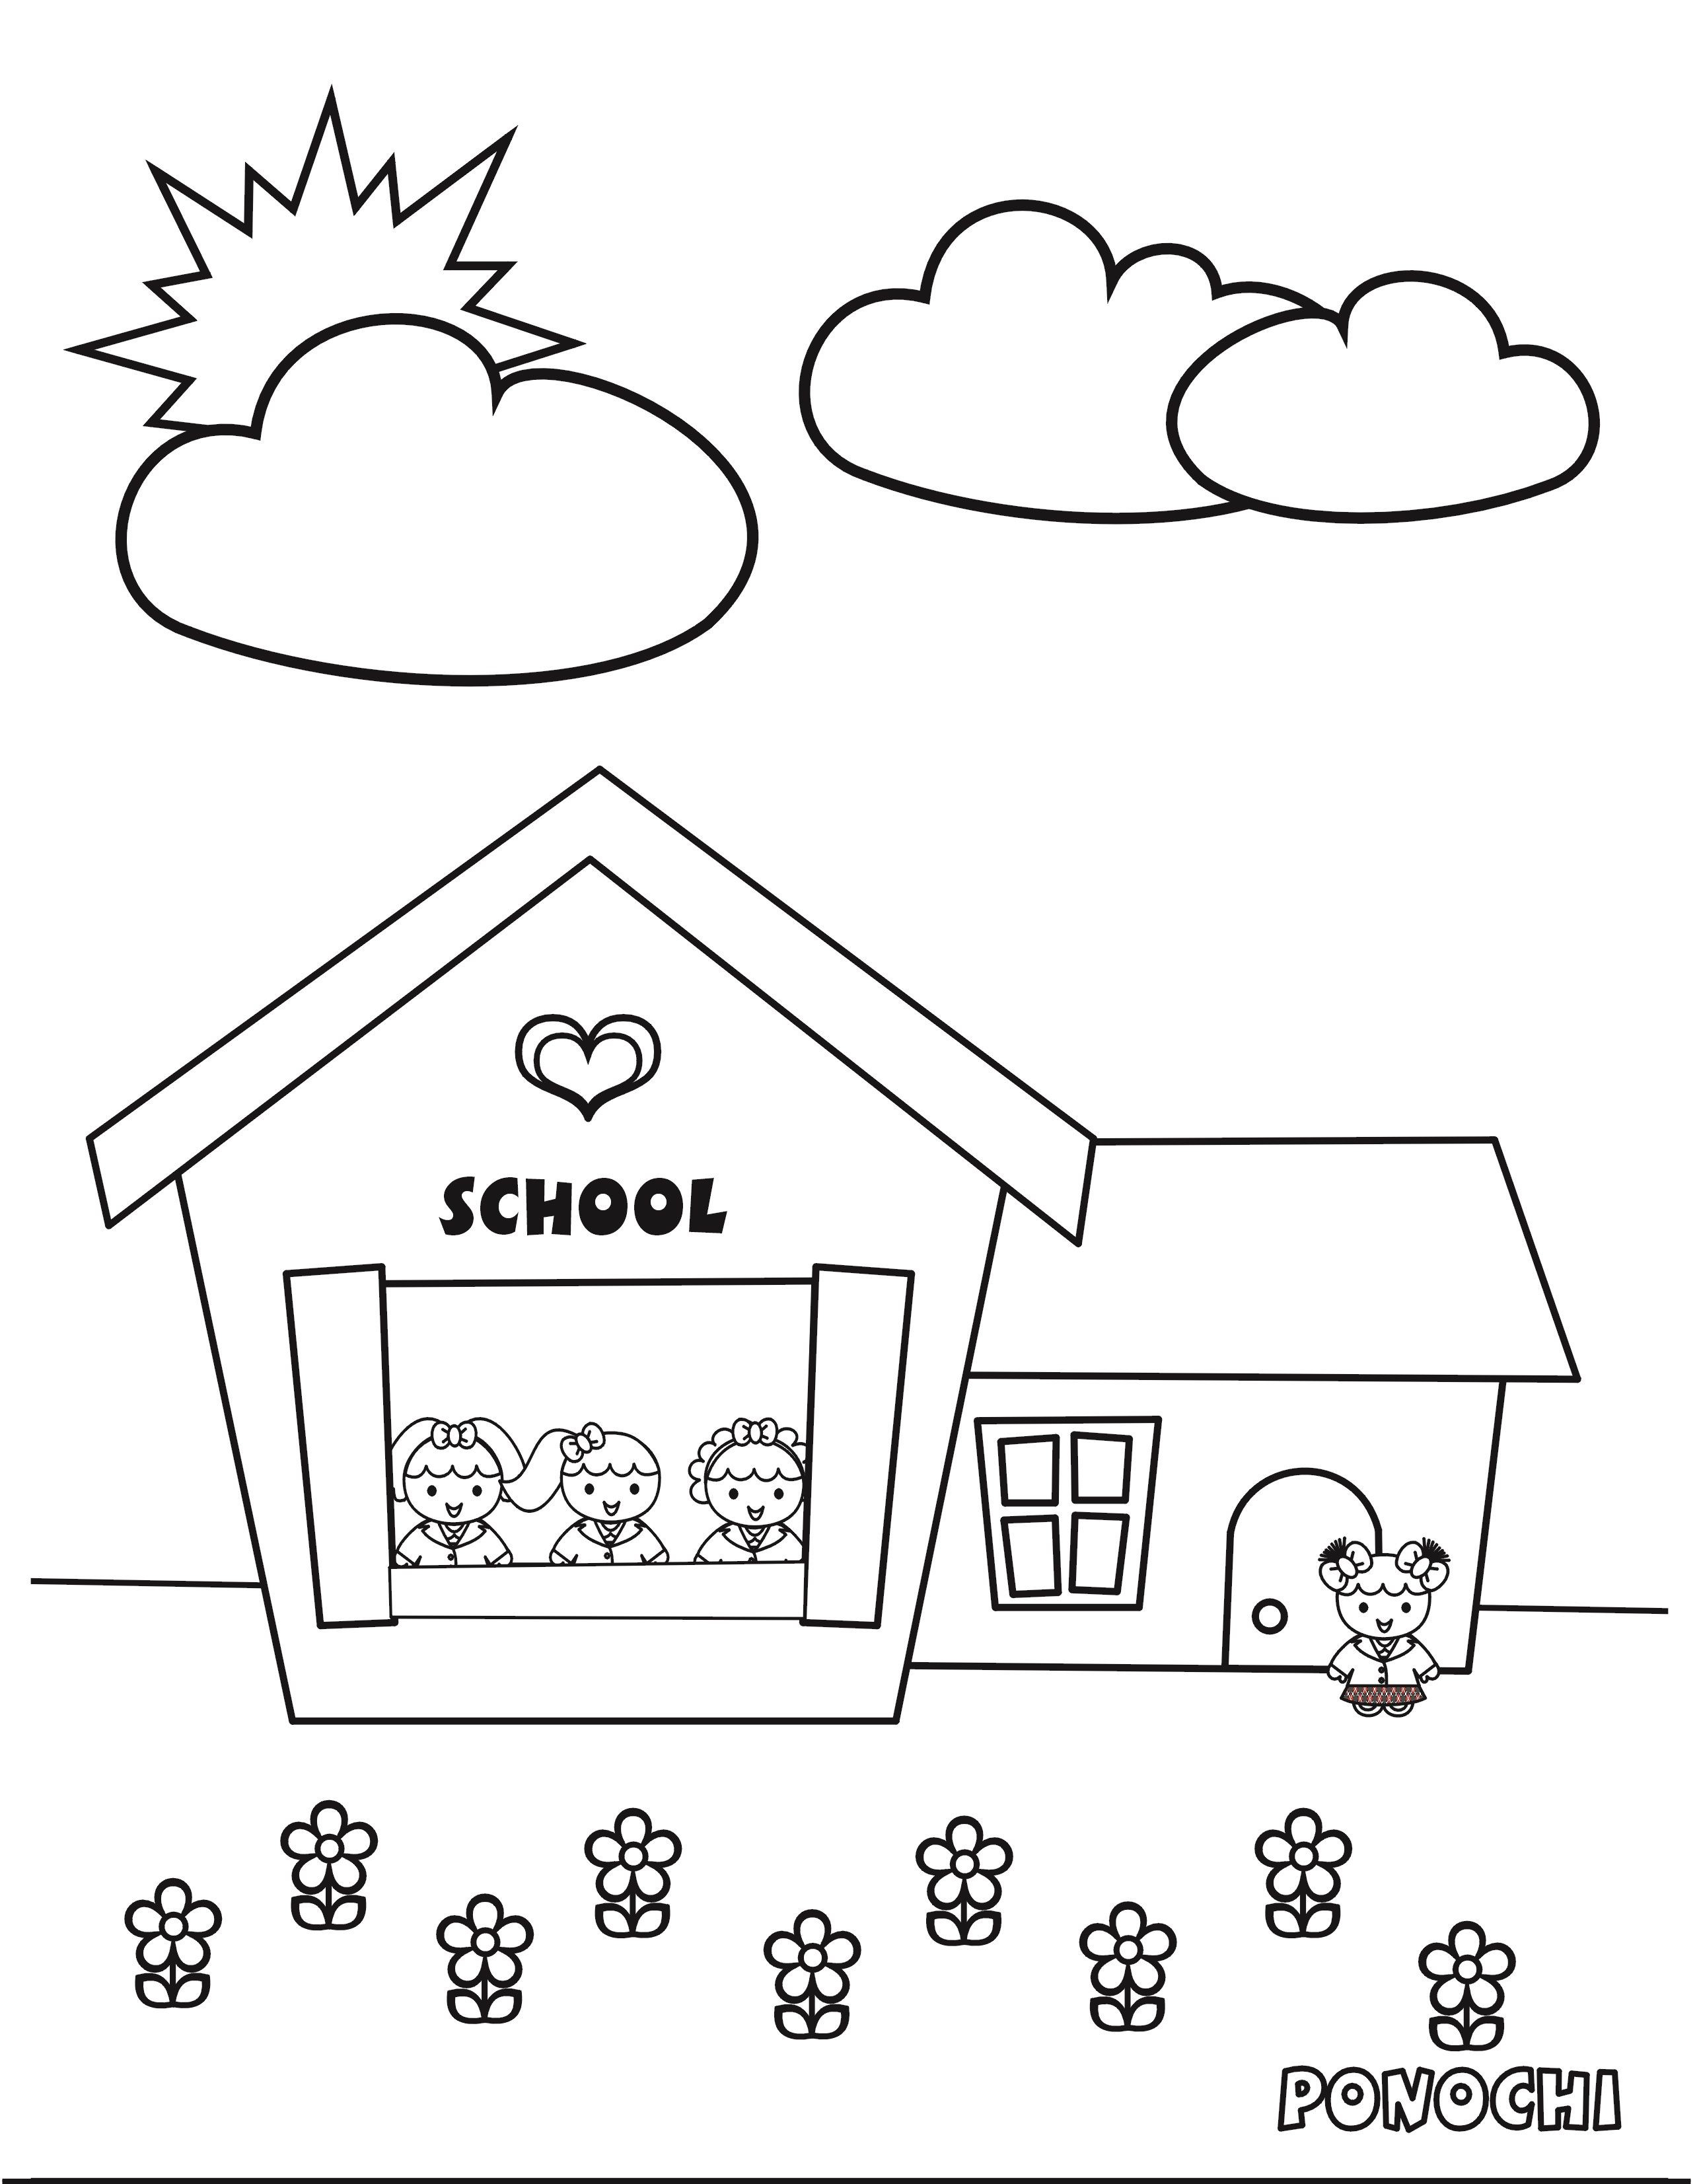 School Print Coloring Pages Colouring In